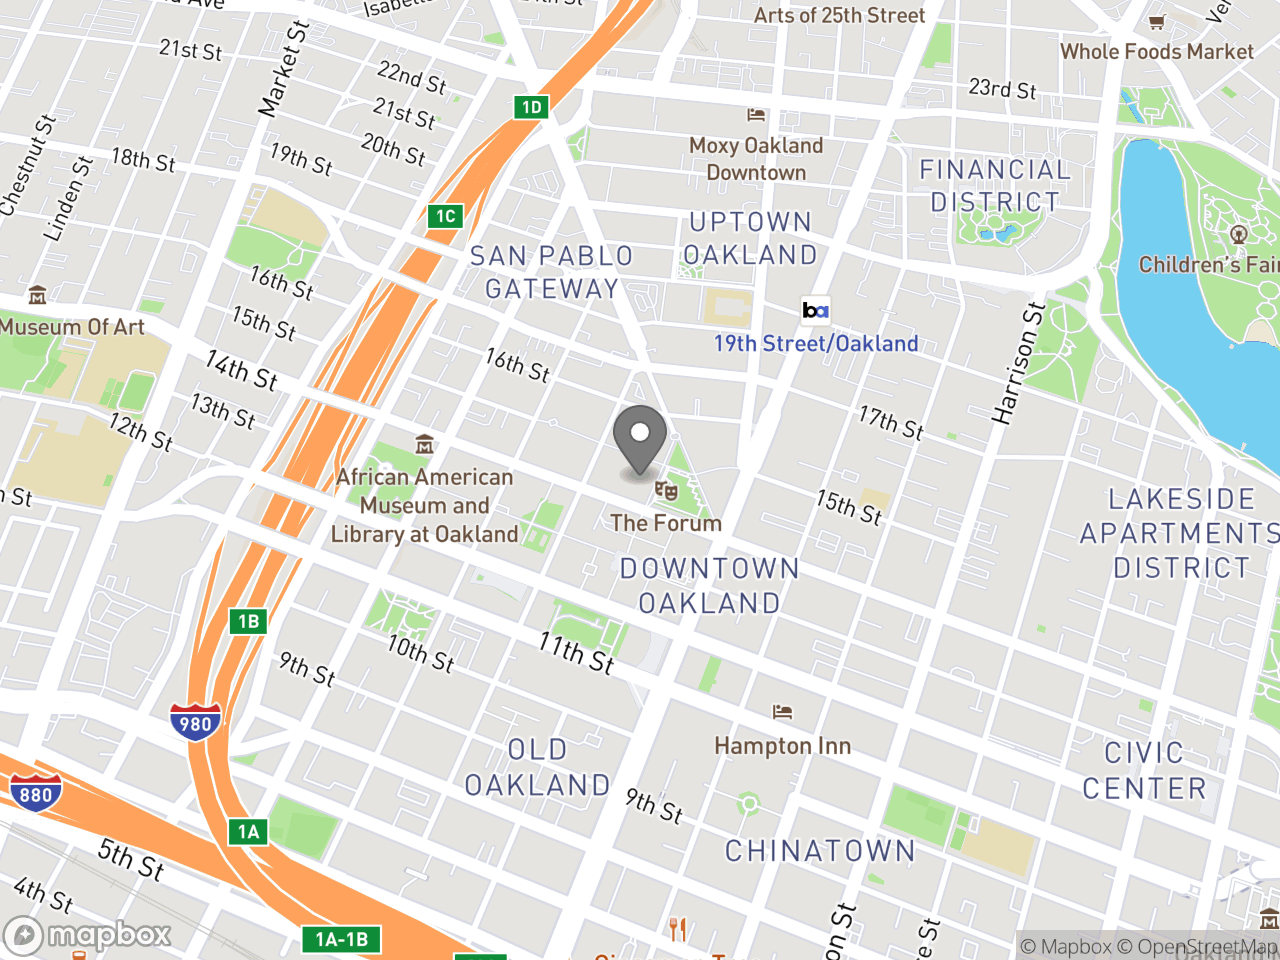 Map image for Cannabis Regulatory Commission Meeting May 3, 2018, located at 1 Frank H Ogawa Plaza in Oakland, CA 94612